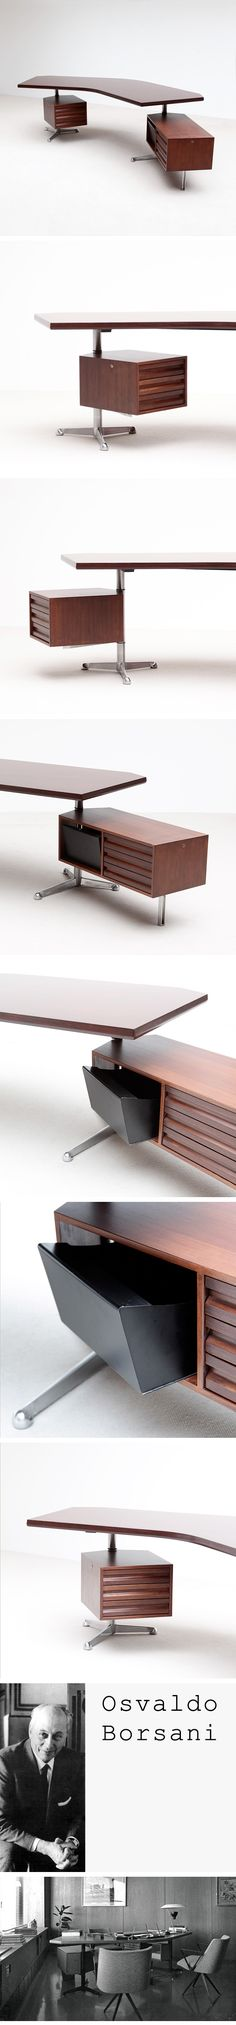 T96 Executive Desk by Osvaldo Borsani